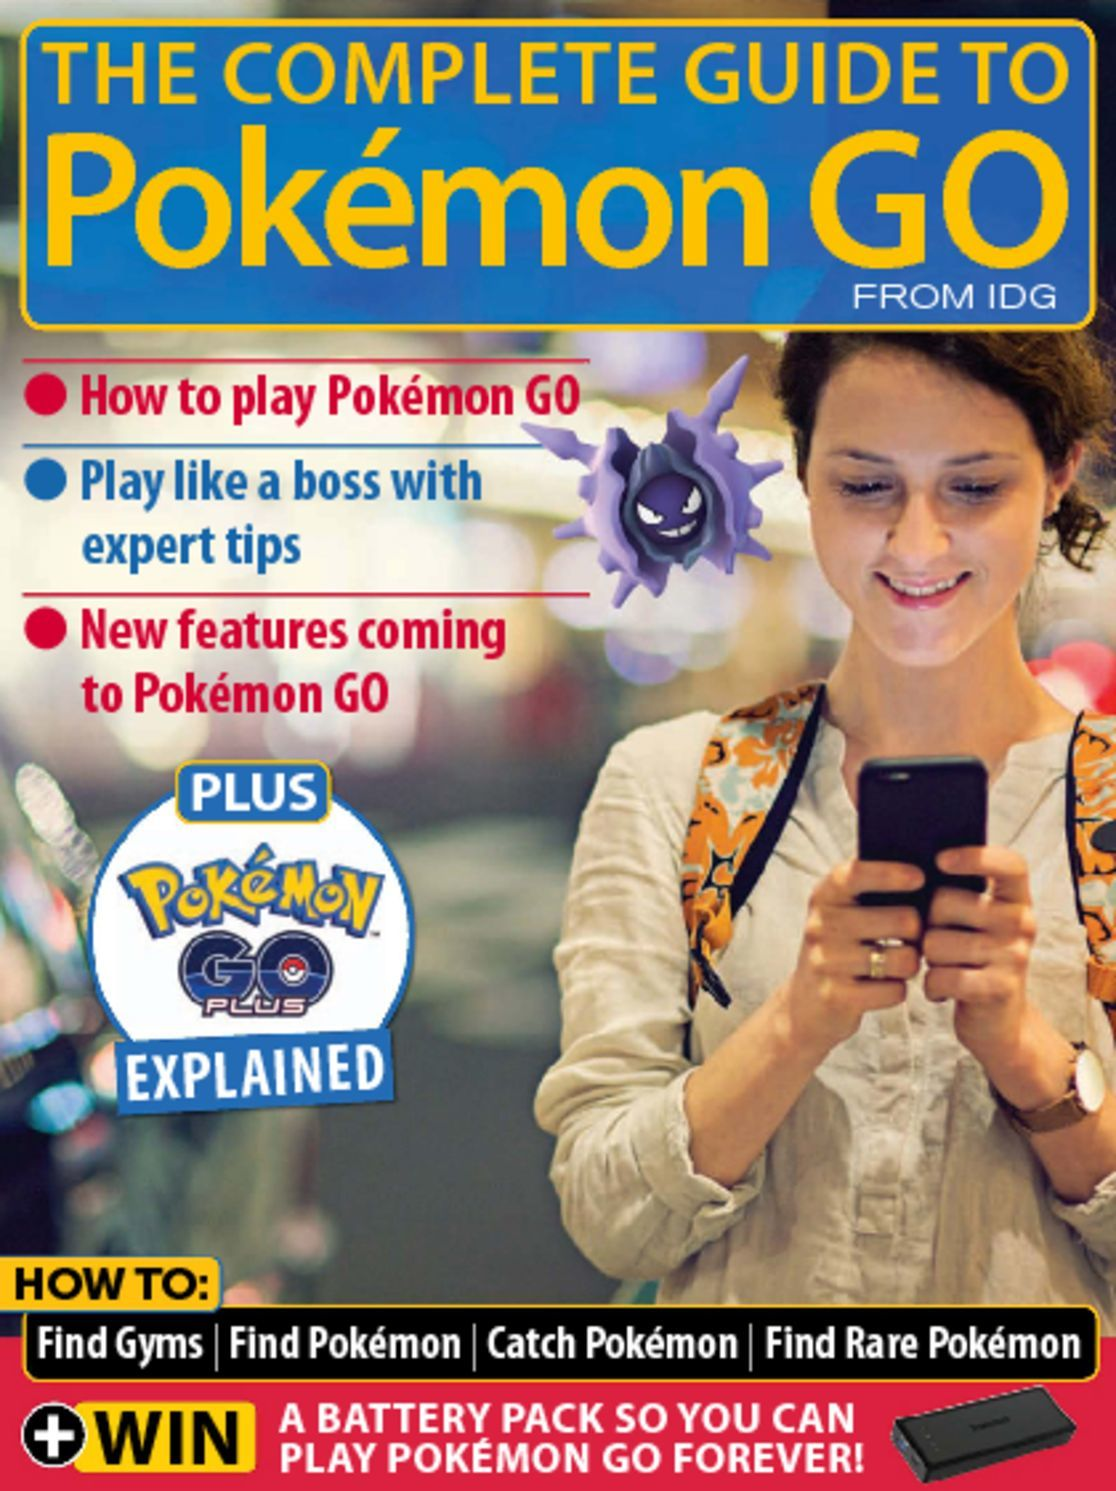 The Complete Guide to Pokémon Go Digital